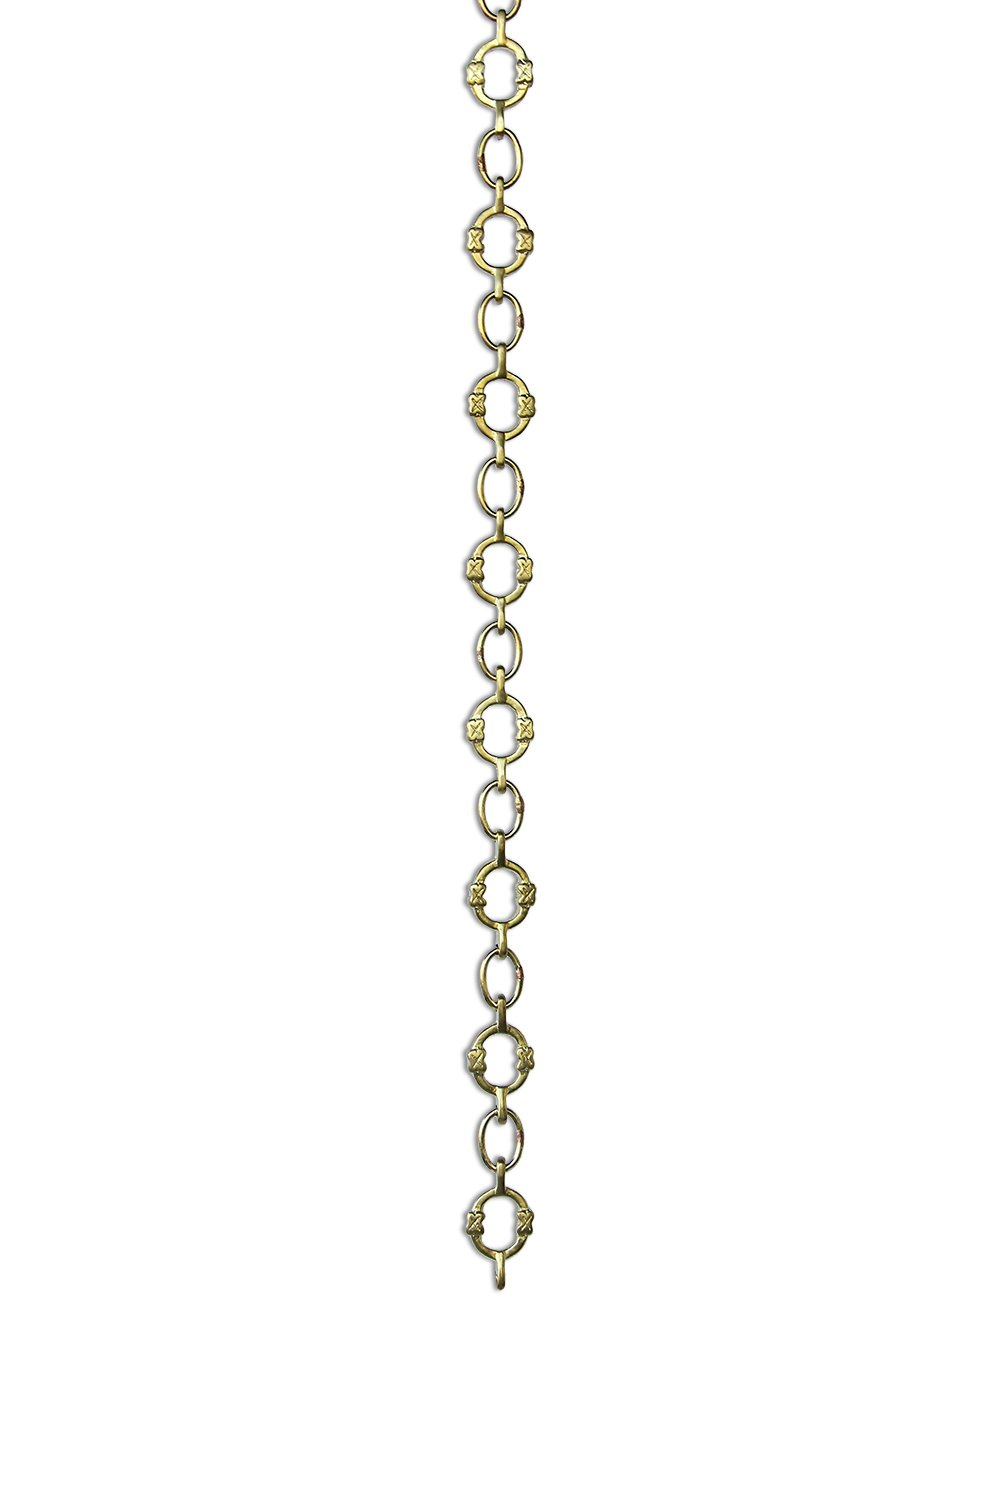 RCH Hardware CH 17 PB Decorative Polished Solid Brass Chain for Hanging Lighting Small Round Unwelded Links with X Design 1 Foot